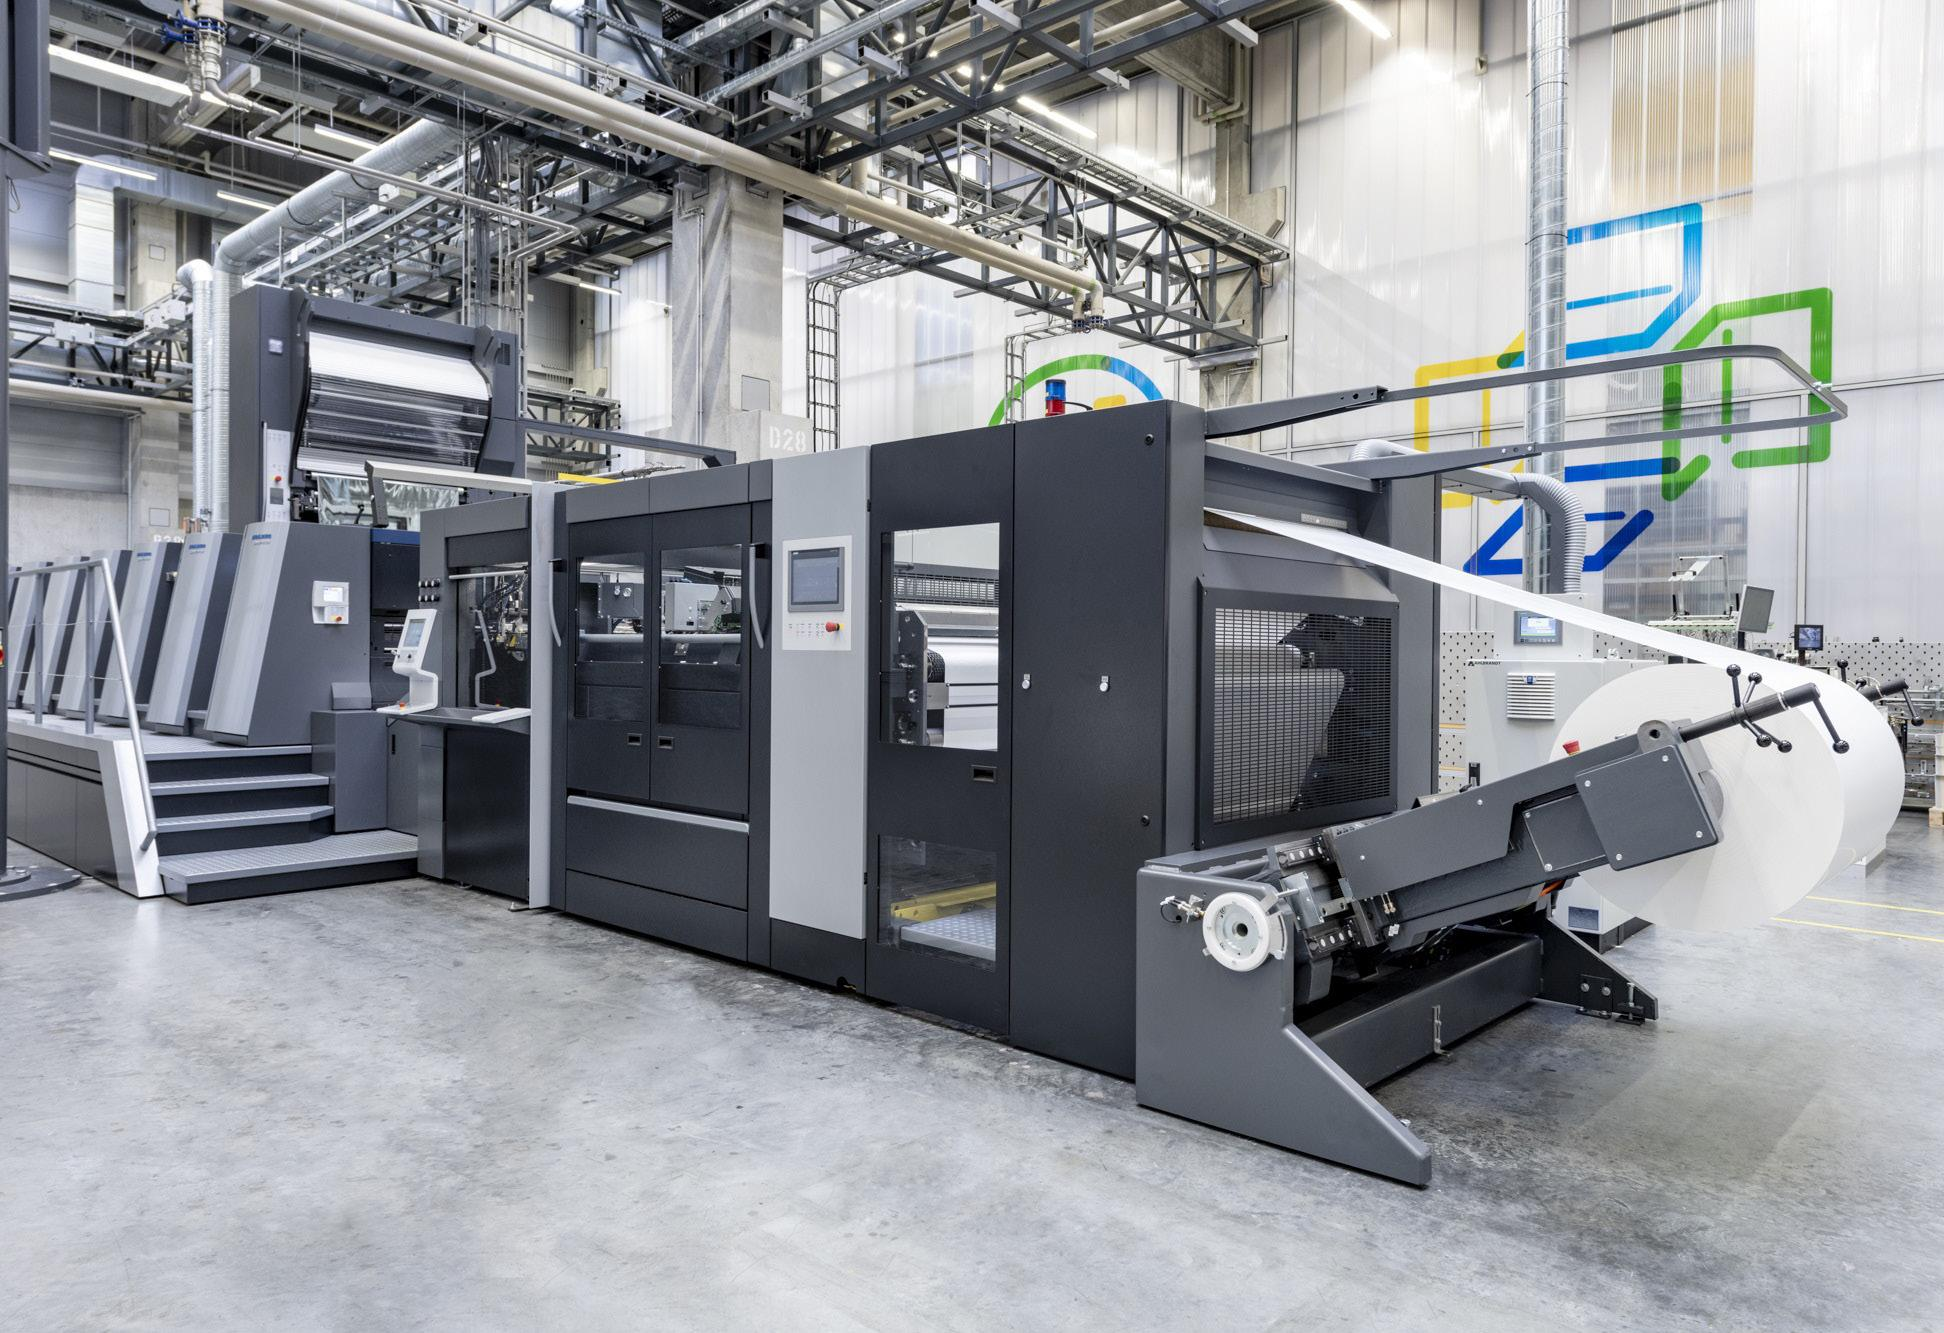 Page 28 of Heidelberg unveils new solutions for labels